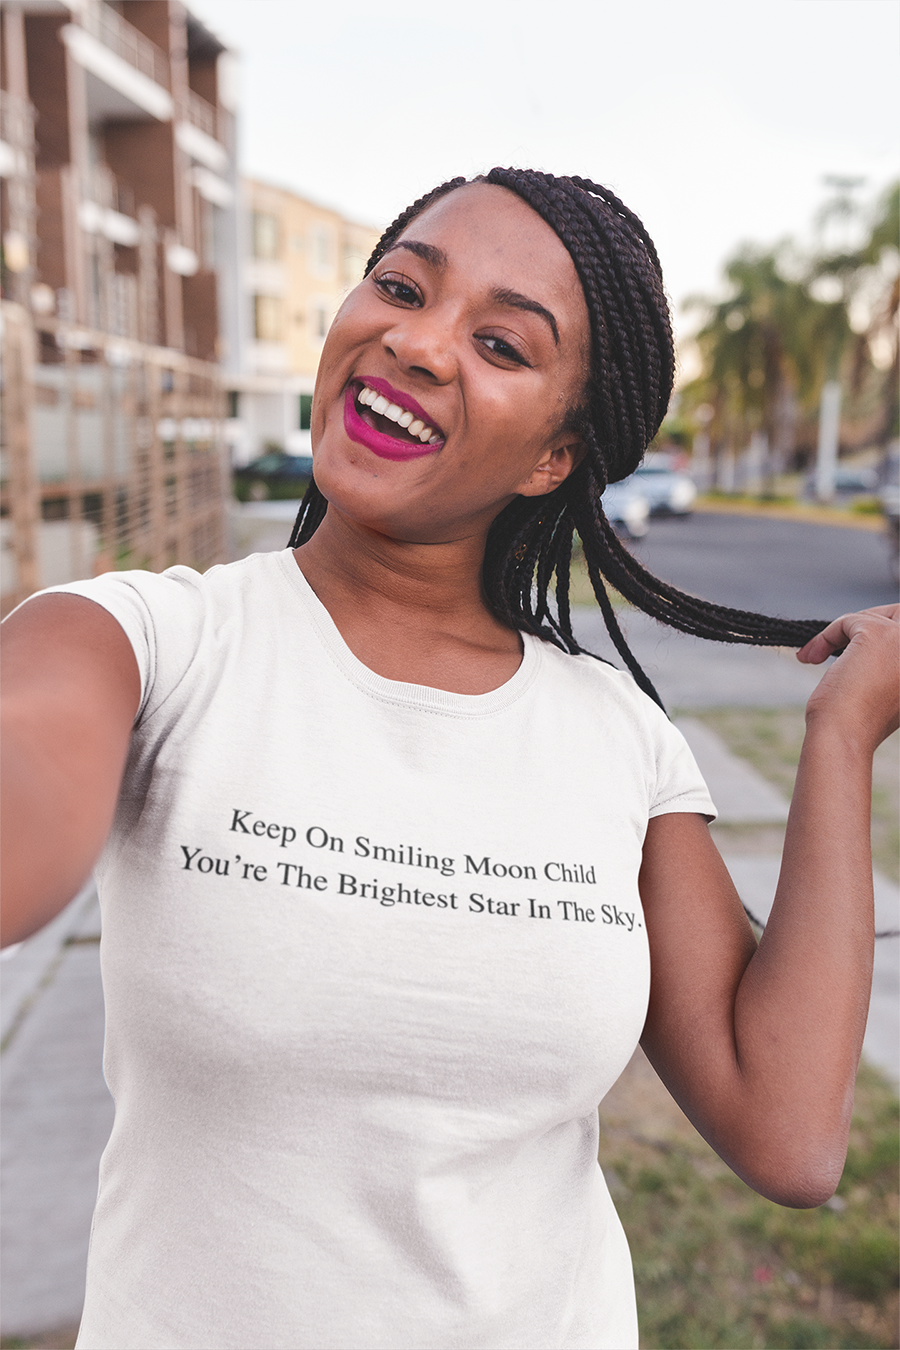 Keep On Smiling Moon Child You're The Brightest Star in the Sky T-shirt - Urbantshirts.co.uk